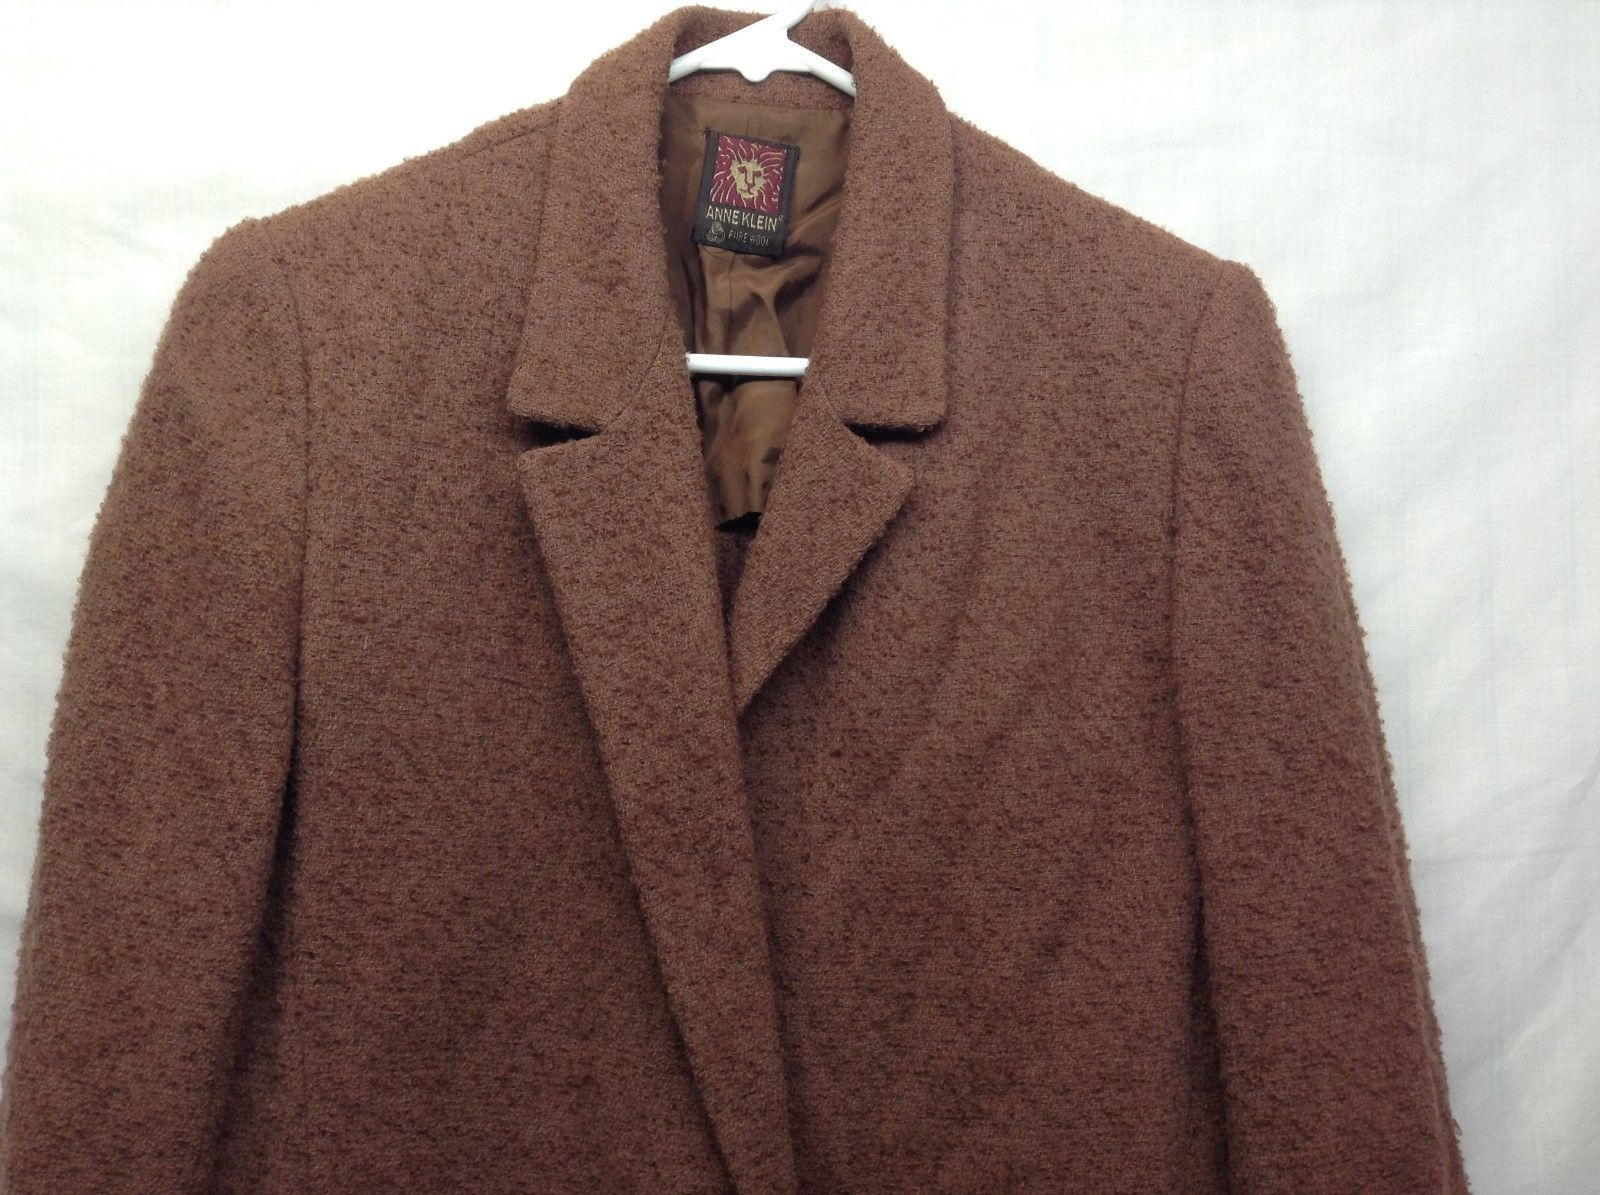 Anne Klein Pure Wool Brown Skirt Suit Sz 6